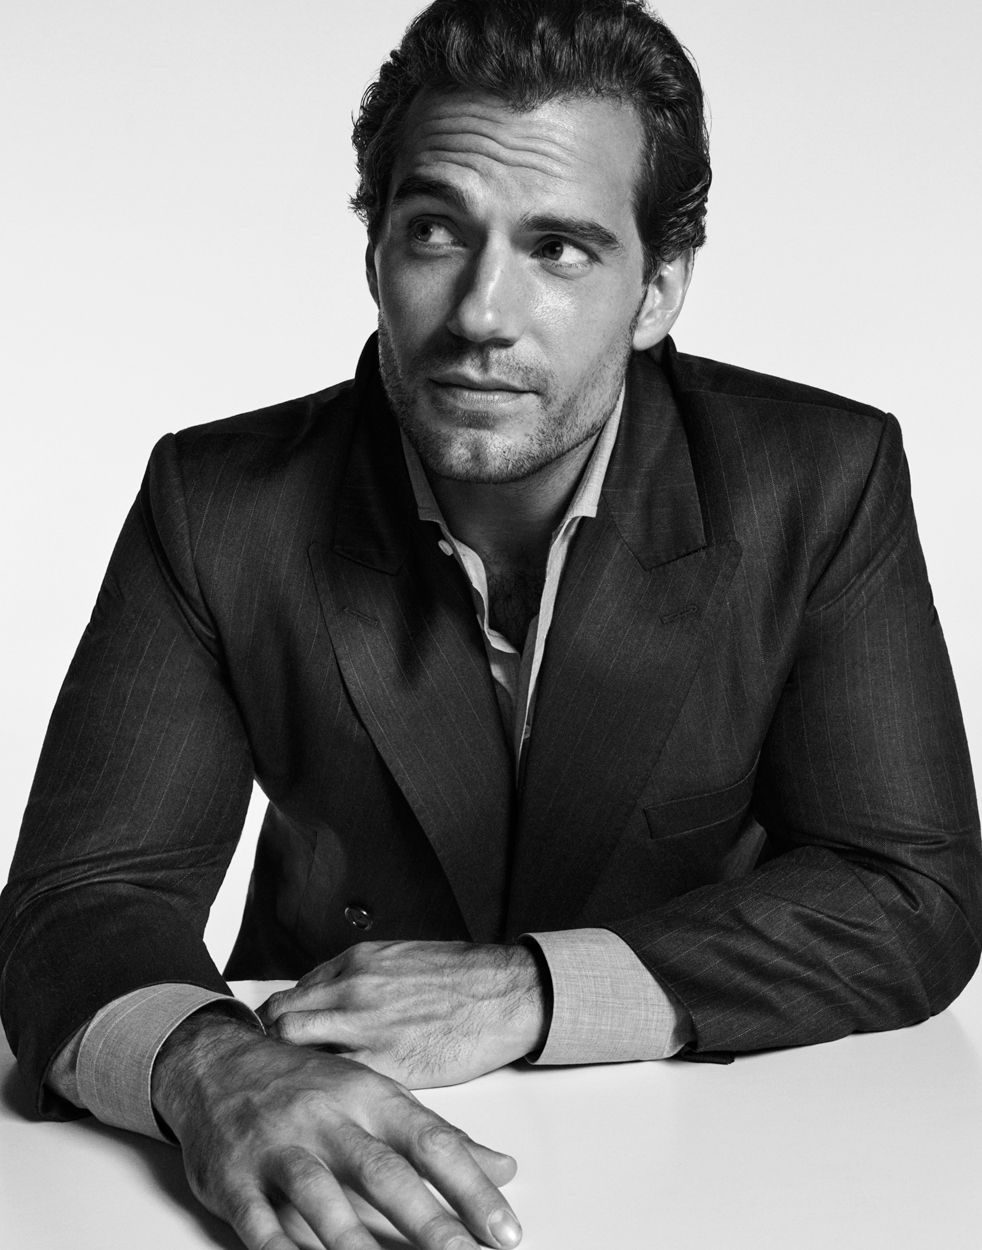 Celebrity Photographer Michael Schwartz: Henry Cavill for Netflix The Witcher